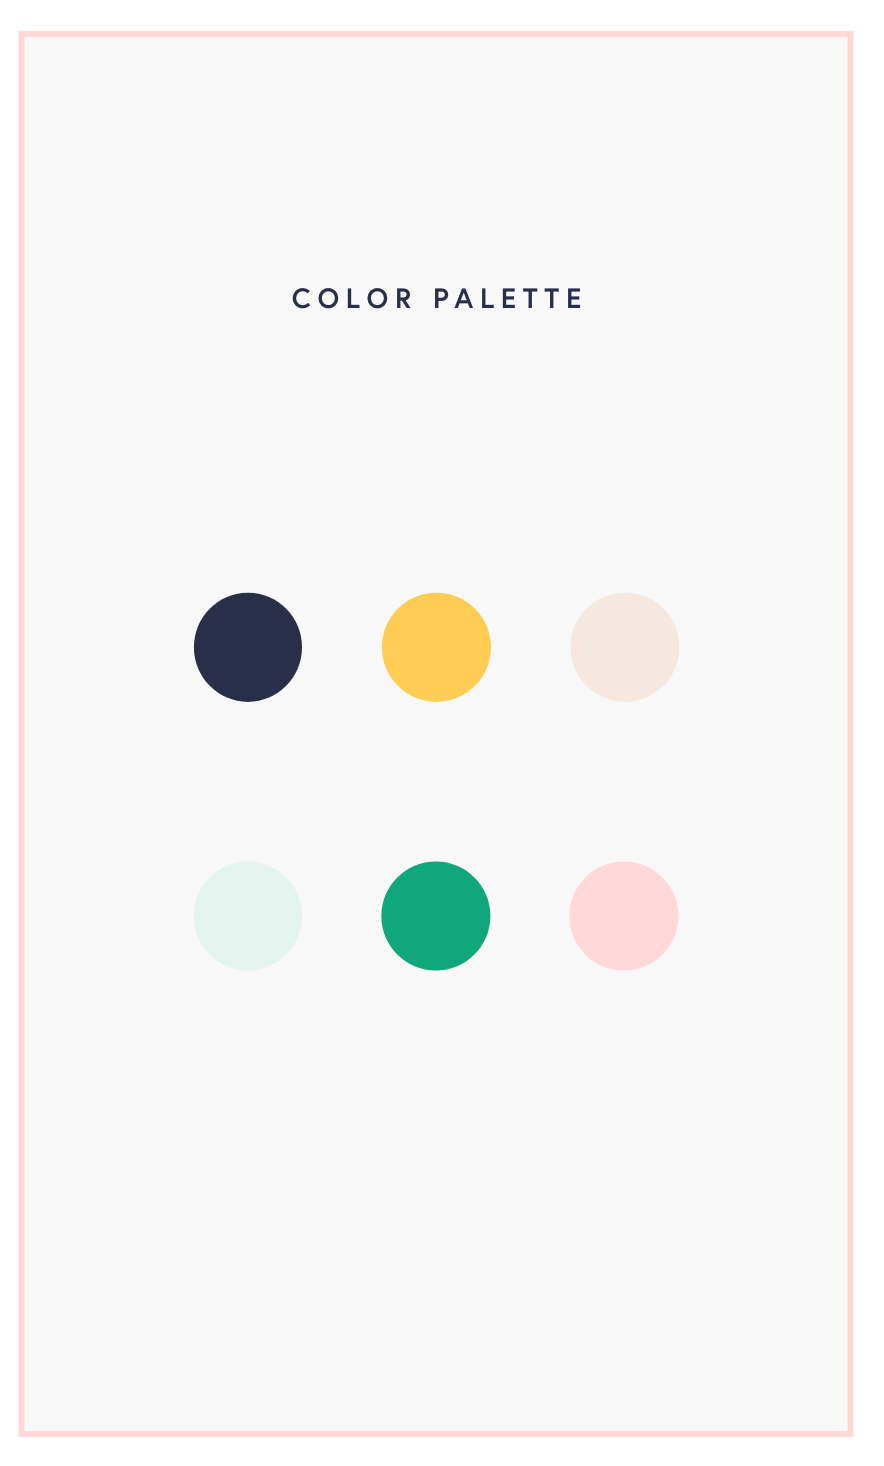 Conscious_Accounting_ColorPalette@2x.png